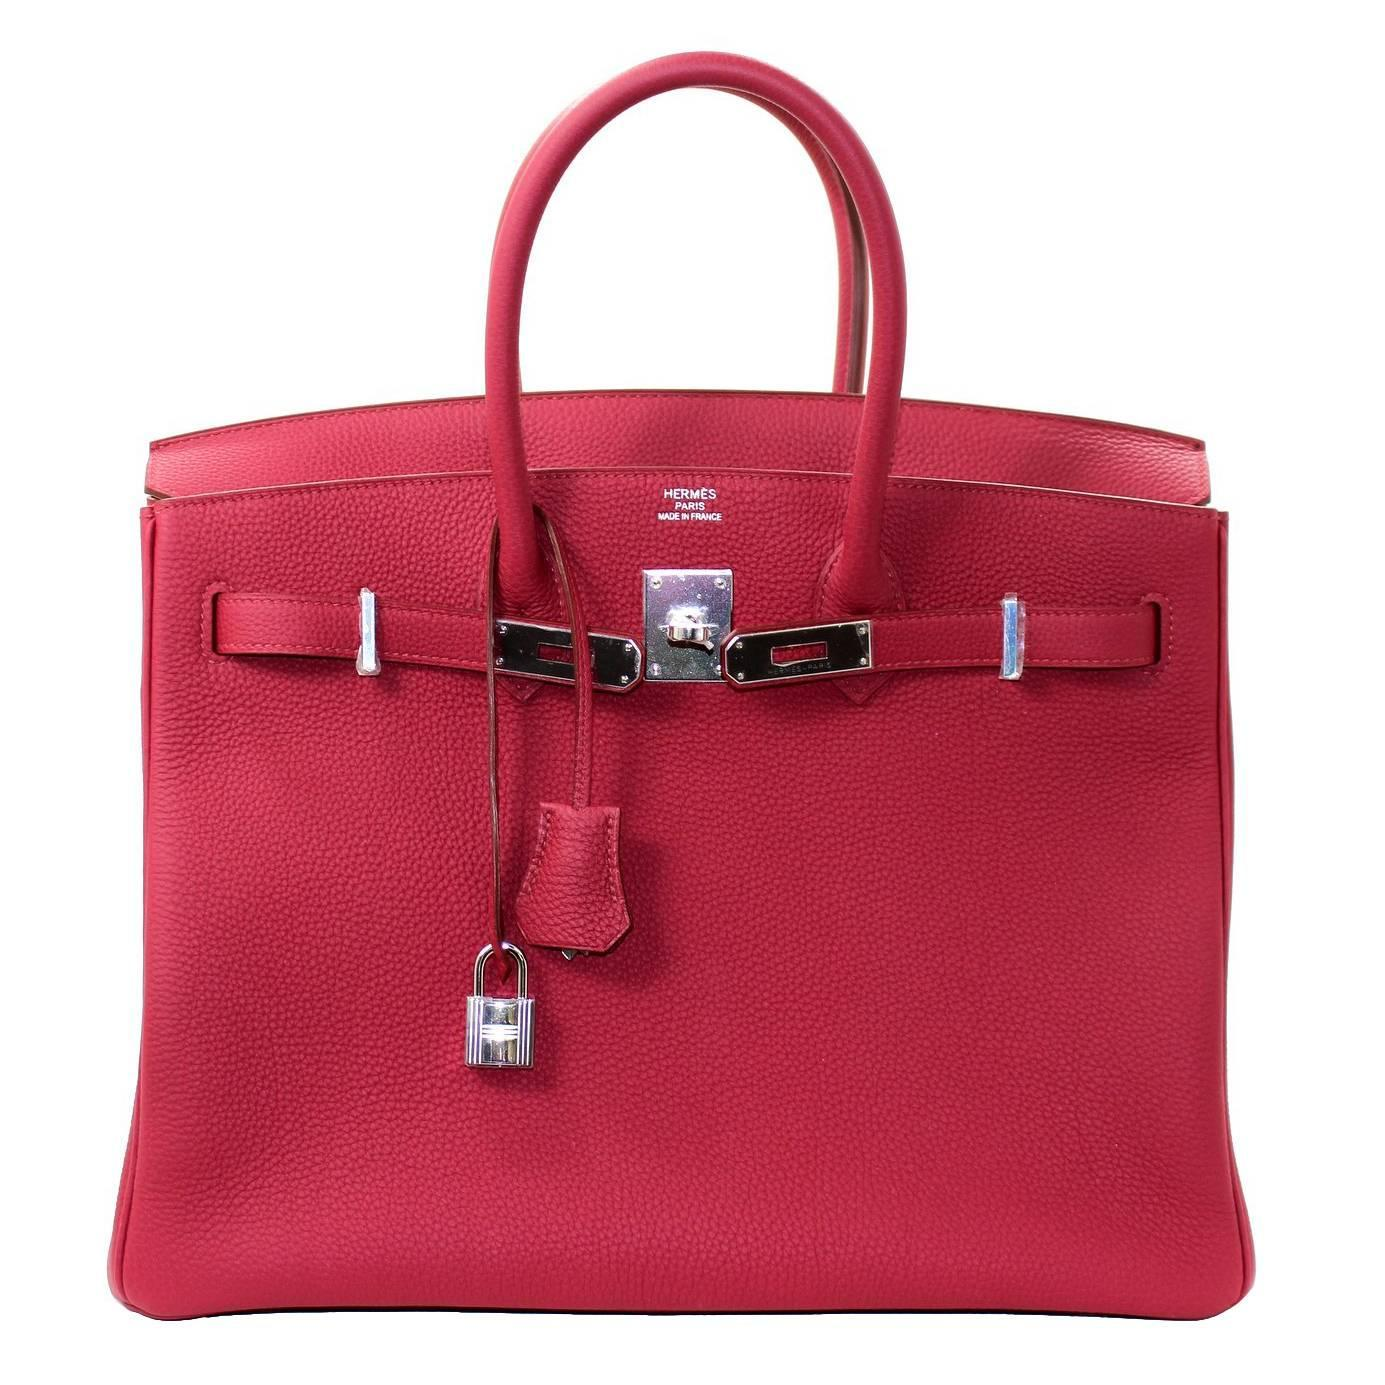 5a19a64ae2 ... low cost hermès rubis togo birkin bag 35 cm phw ruby red at 1stdibs  ee741 9ccec